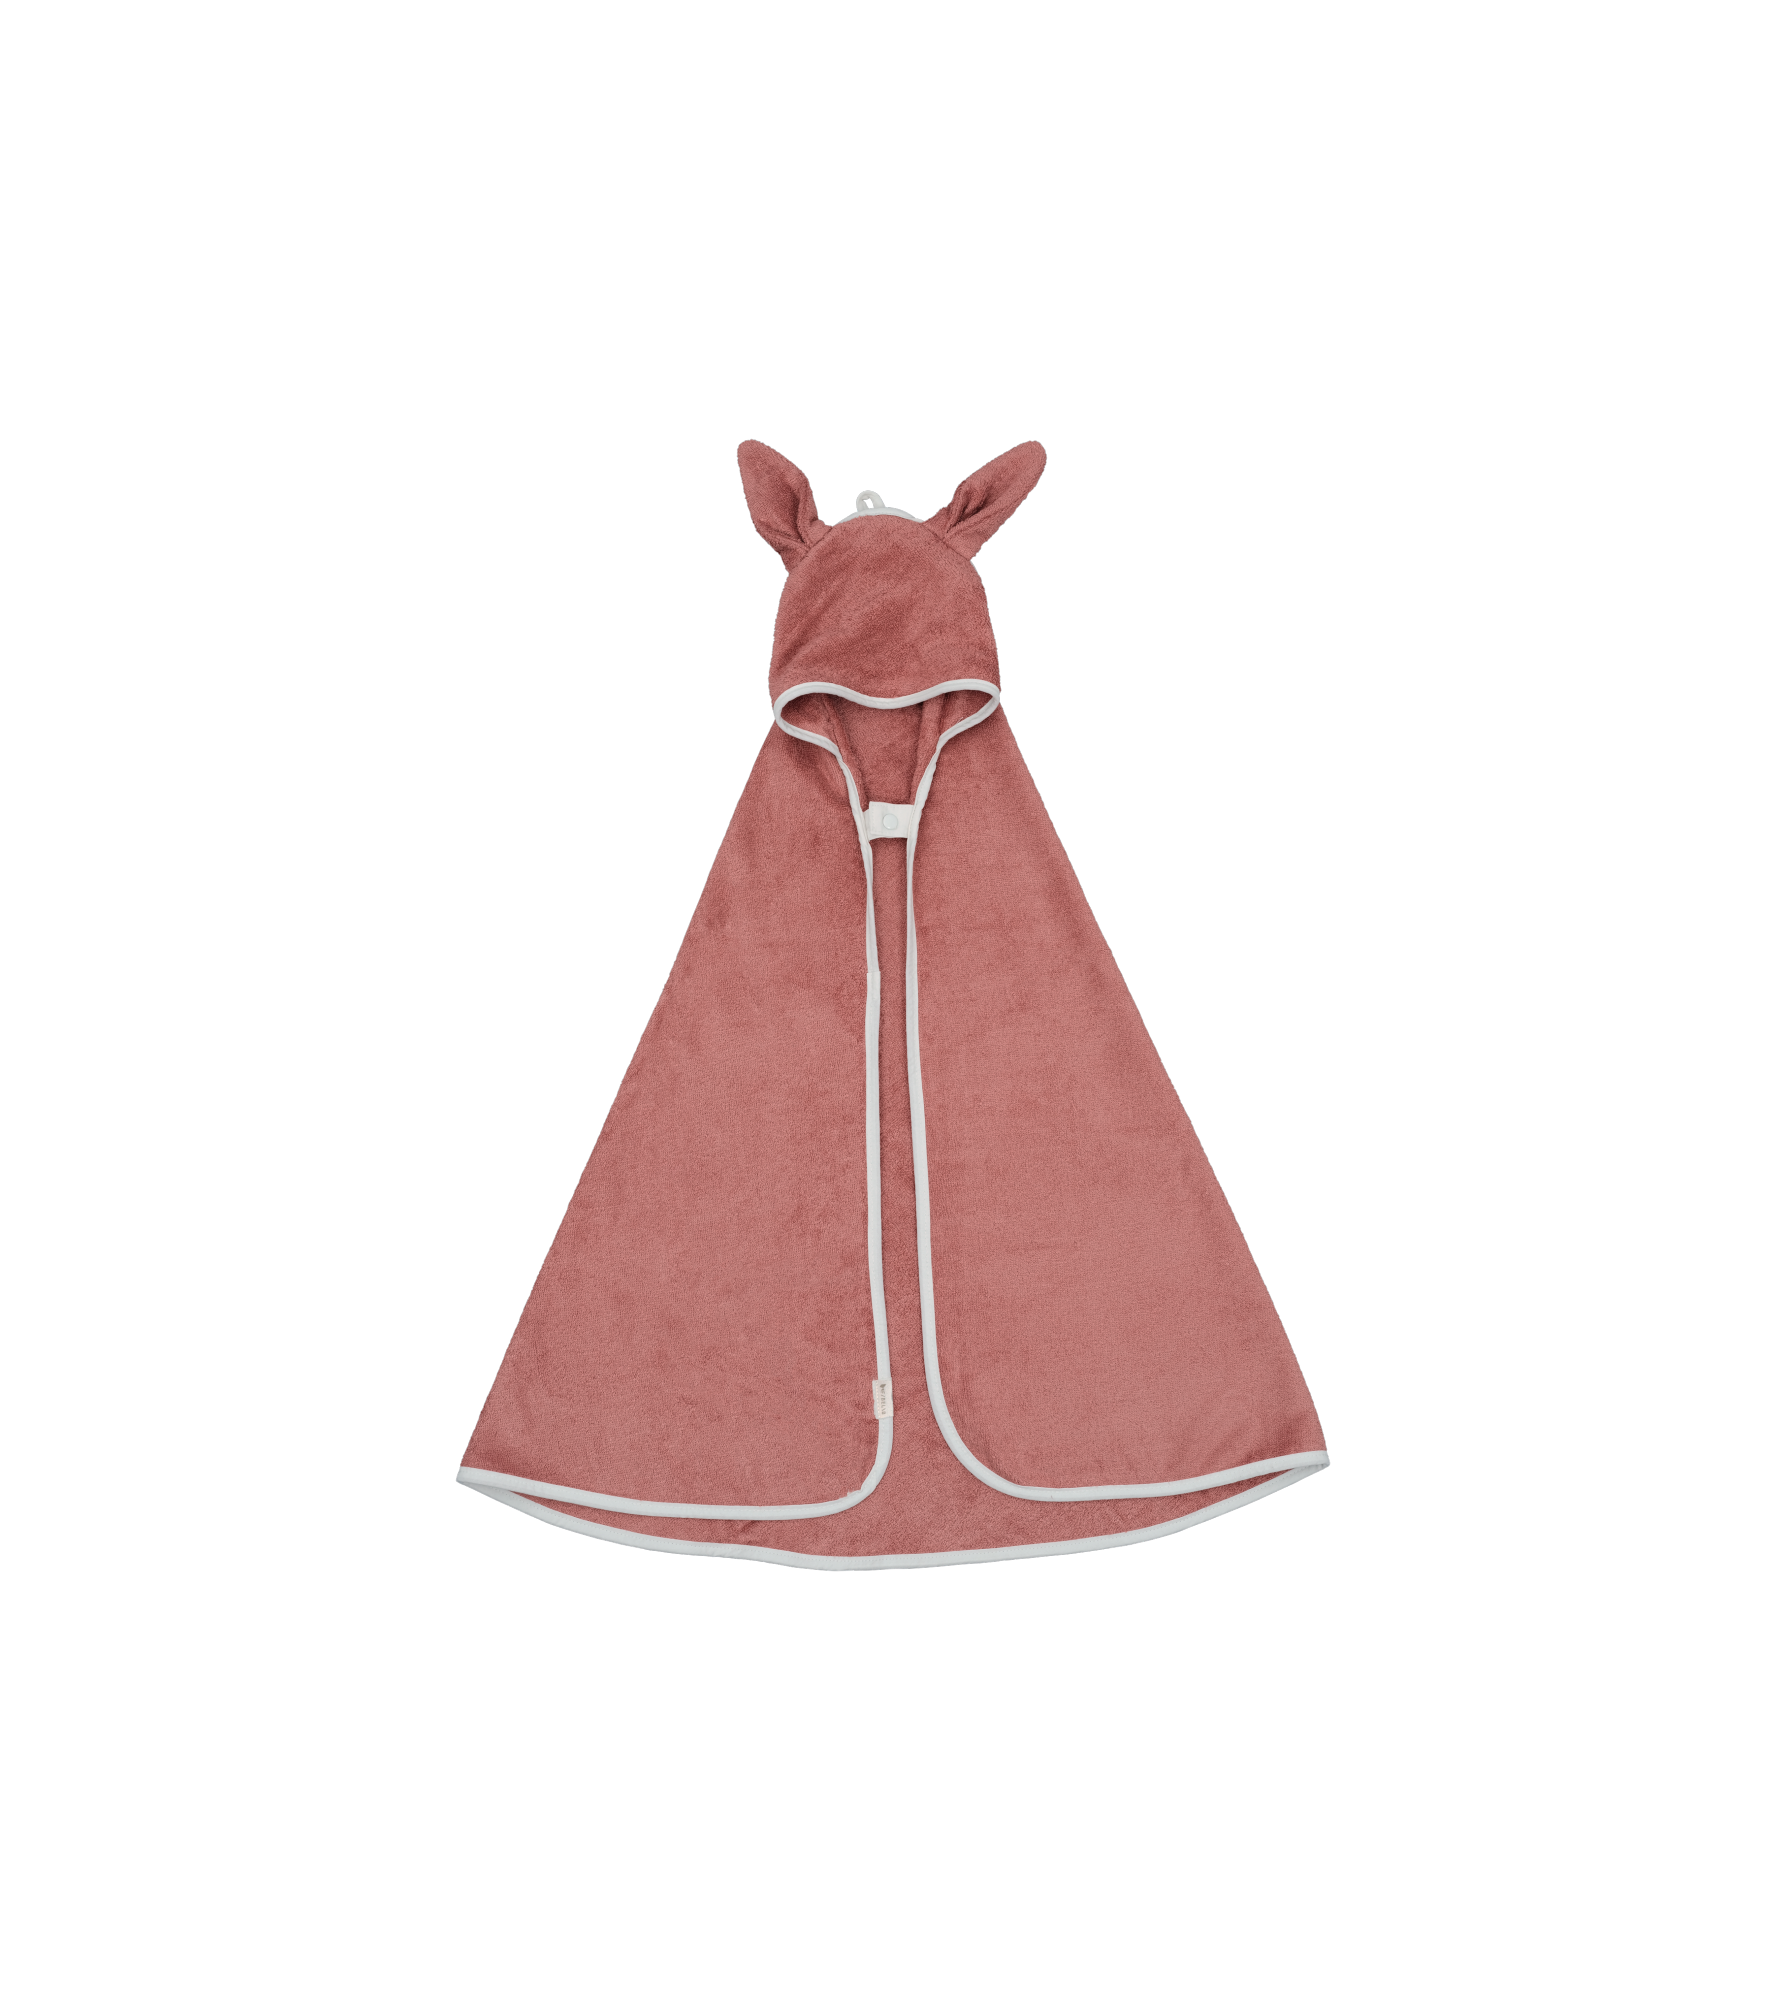 Hooded Baby Towel - Bunny - Clay (primary)_edit.png